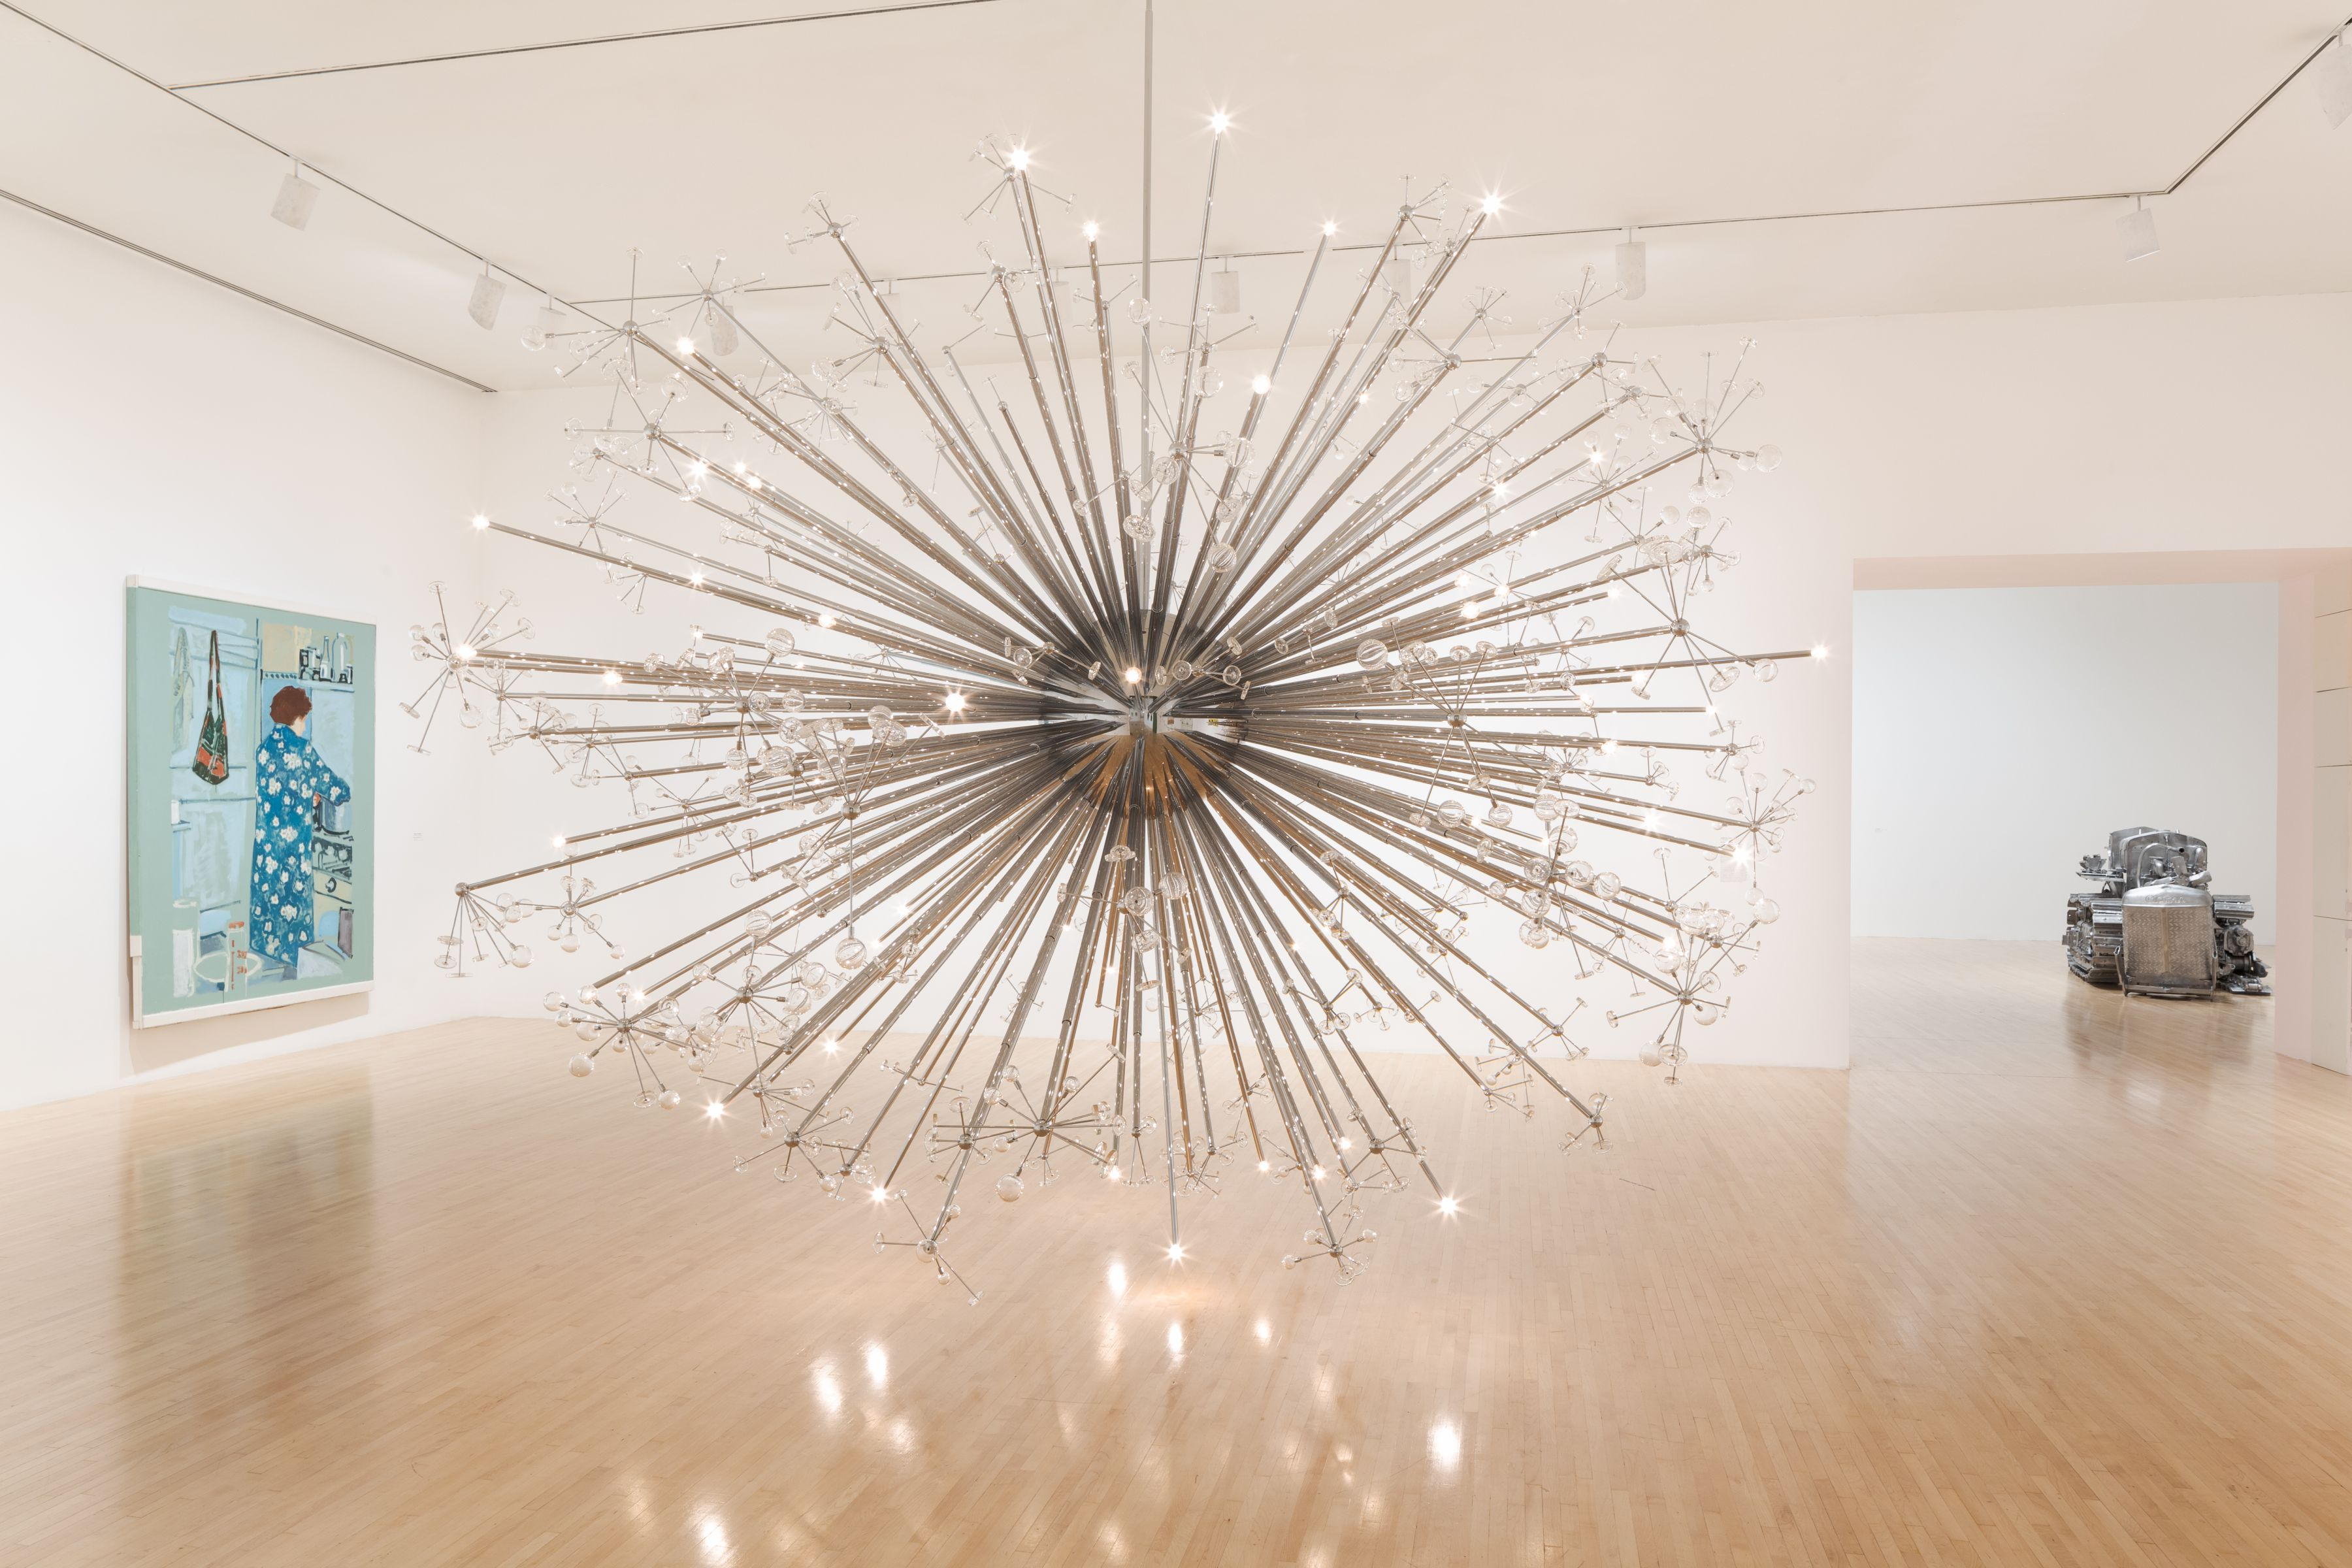 Josiah McElheny, An End to Modernity, 2005, Nickel-plated aluminum, electric lighting, hand-blown glass, steel cable, rigging